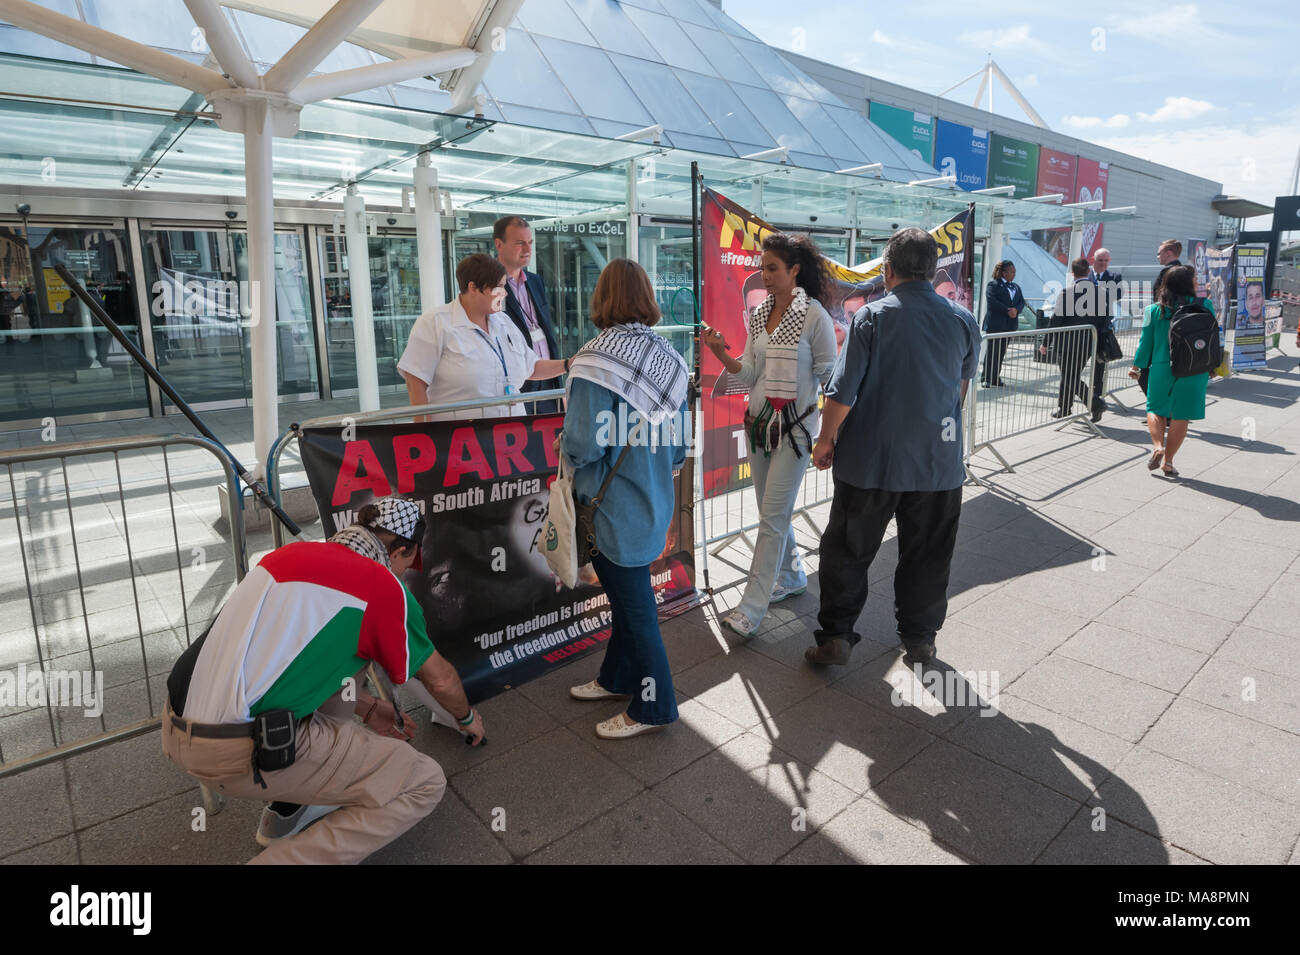 Excel staff argue with Inminds protesters who are putting up banners on the barriers outside Excel London at the Stop G4S protest outside G4S AGM. Inminds protest regularly outside the G4S offices in Victoria St. Stock Photo